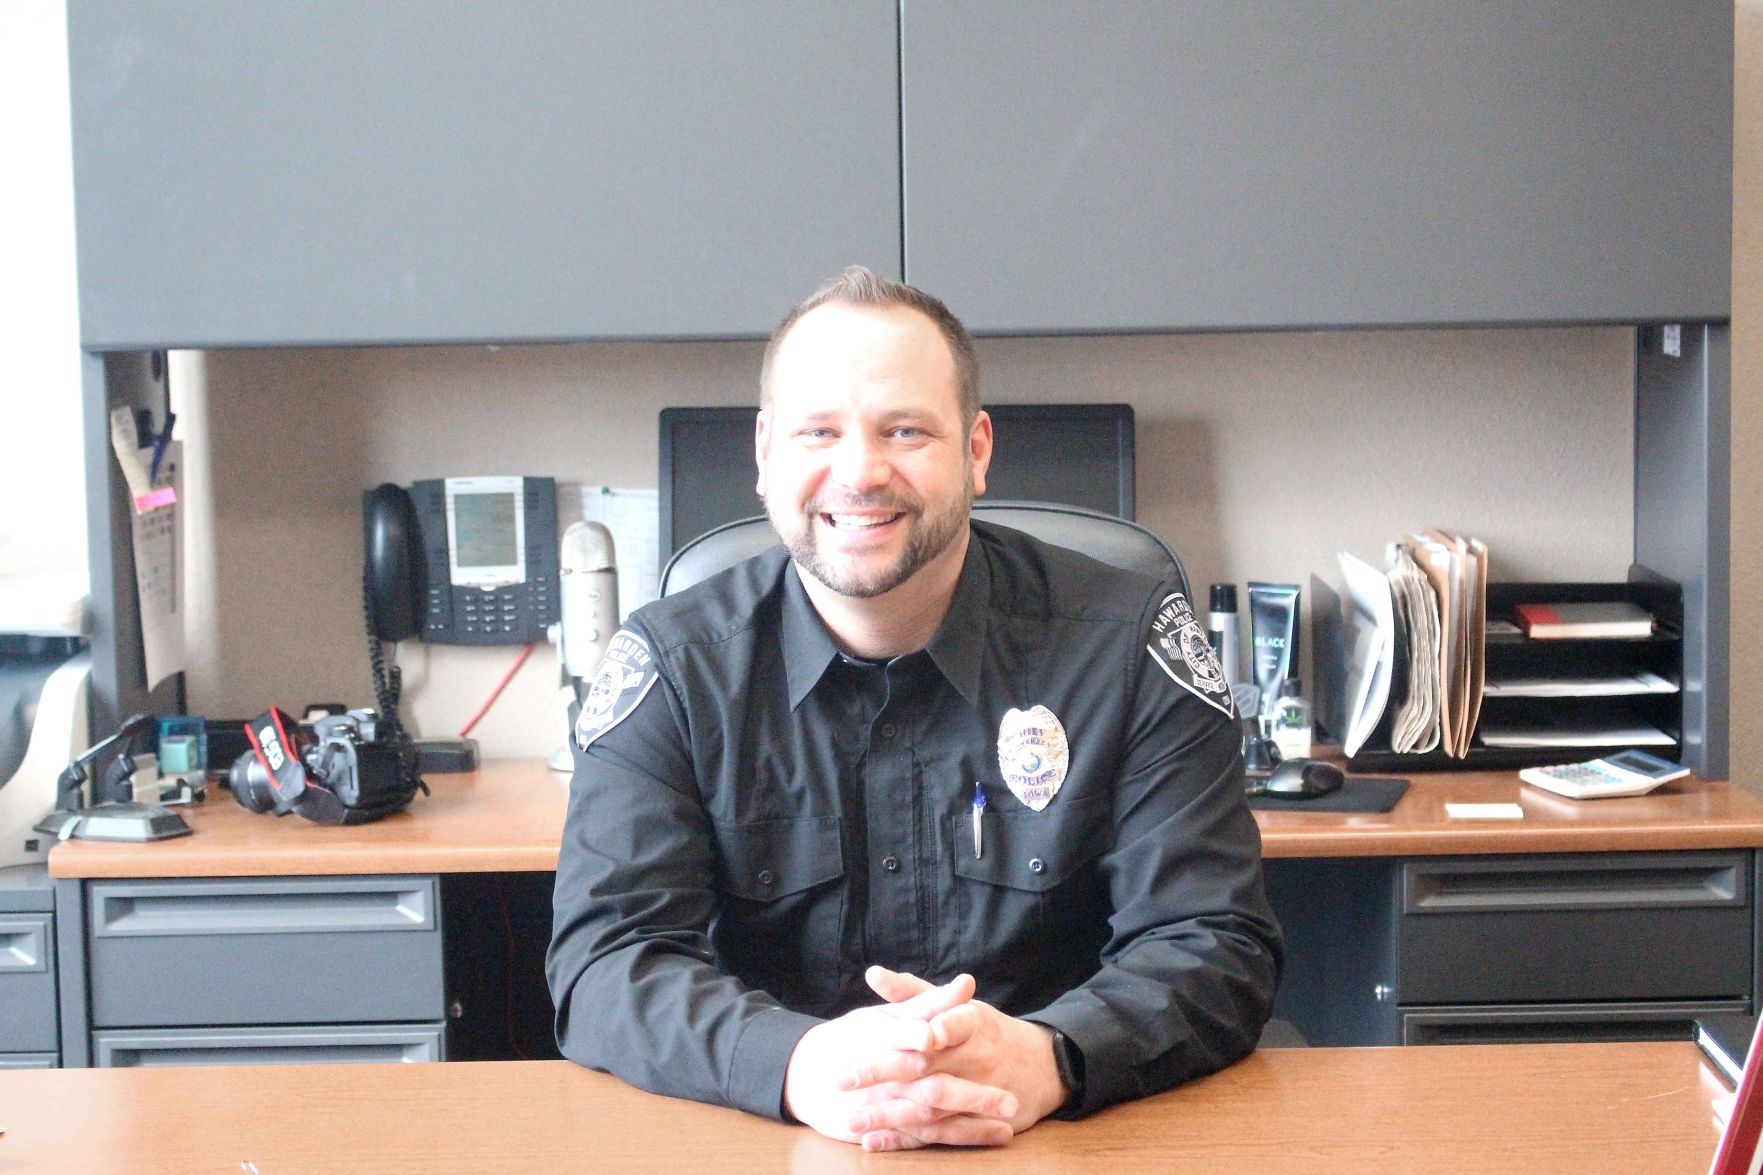 Police Chief gives opinion to council